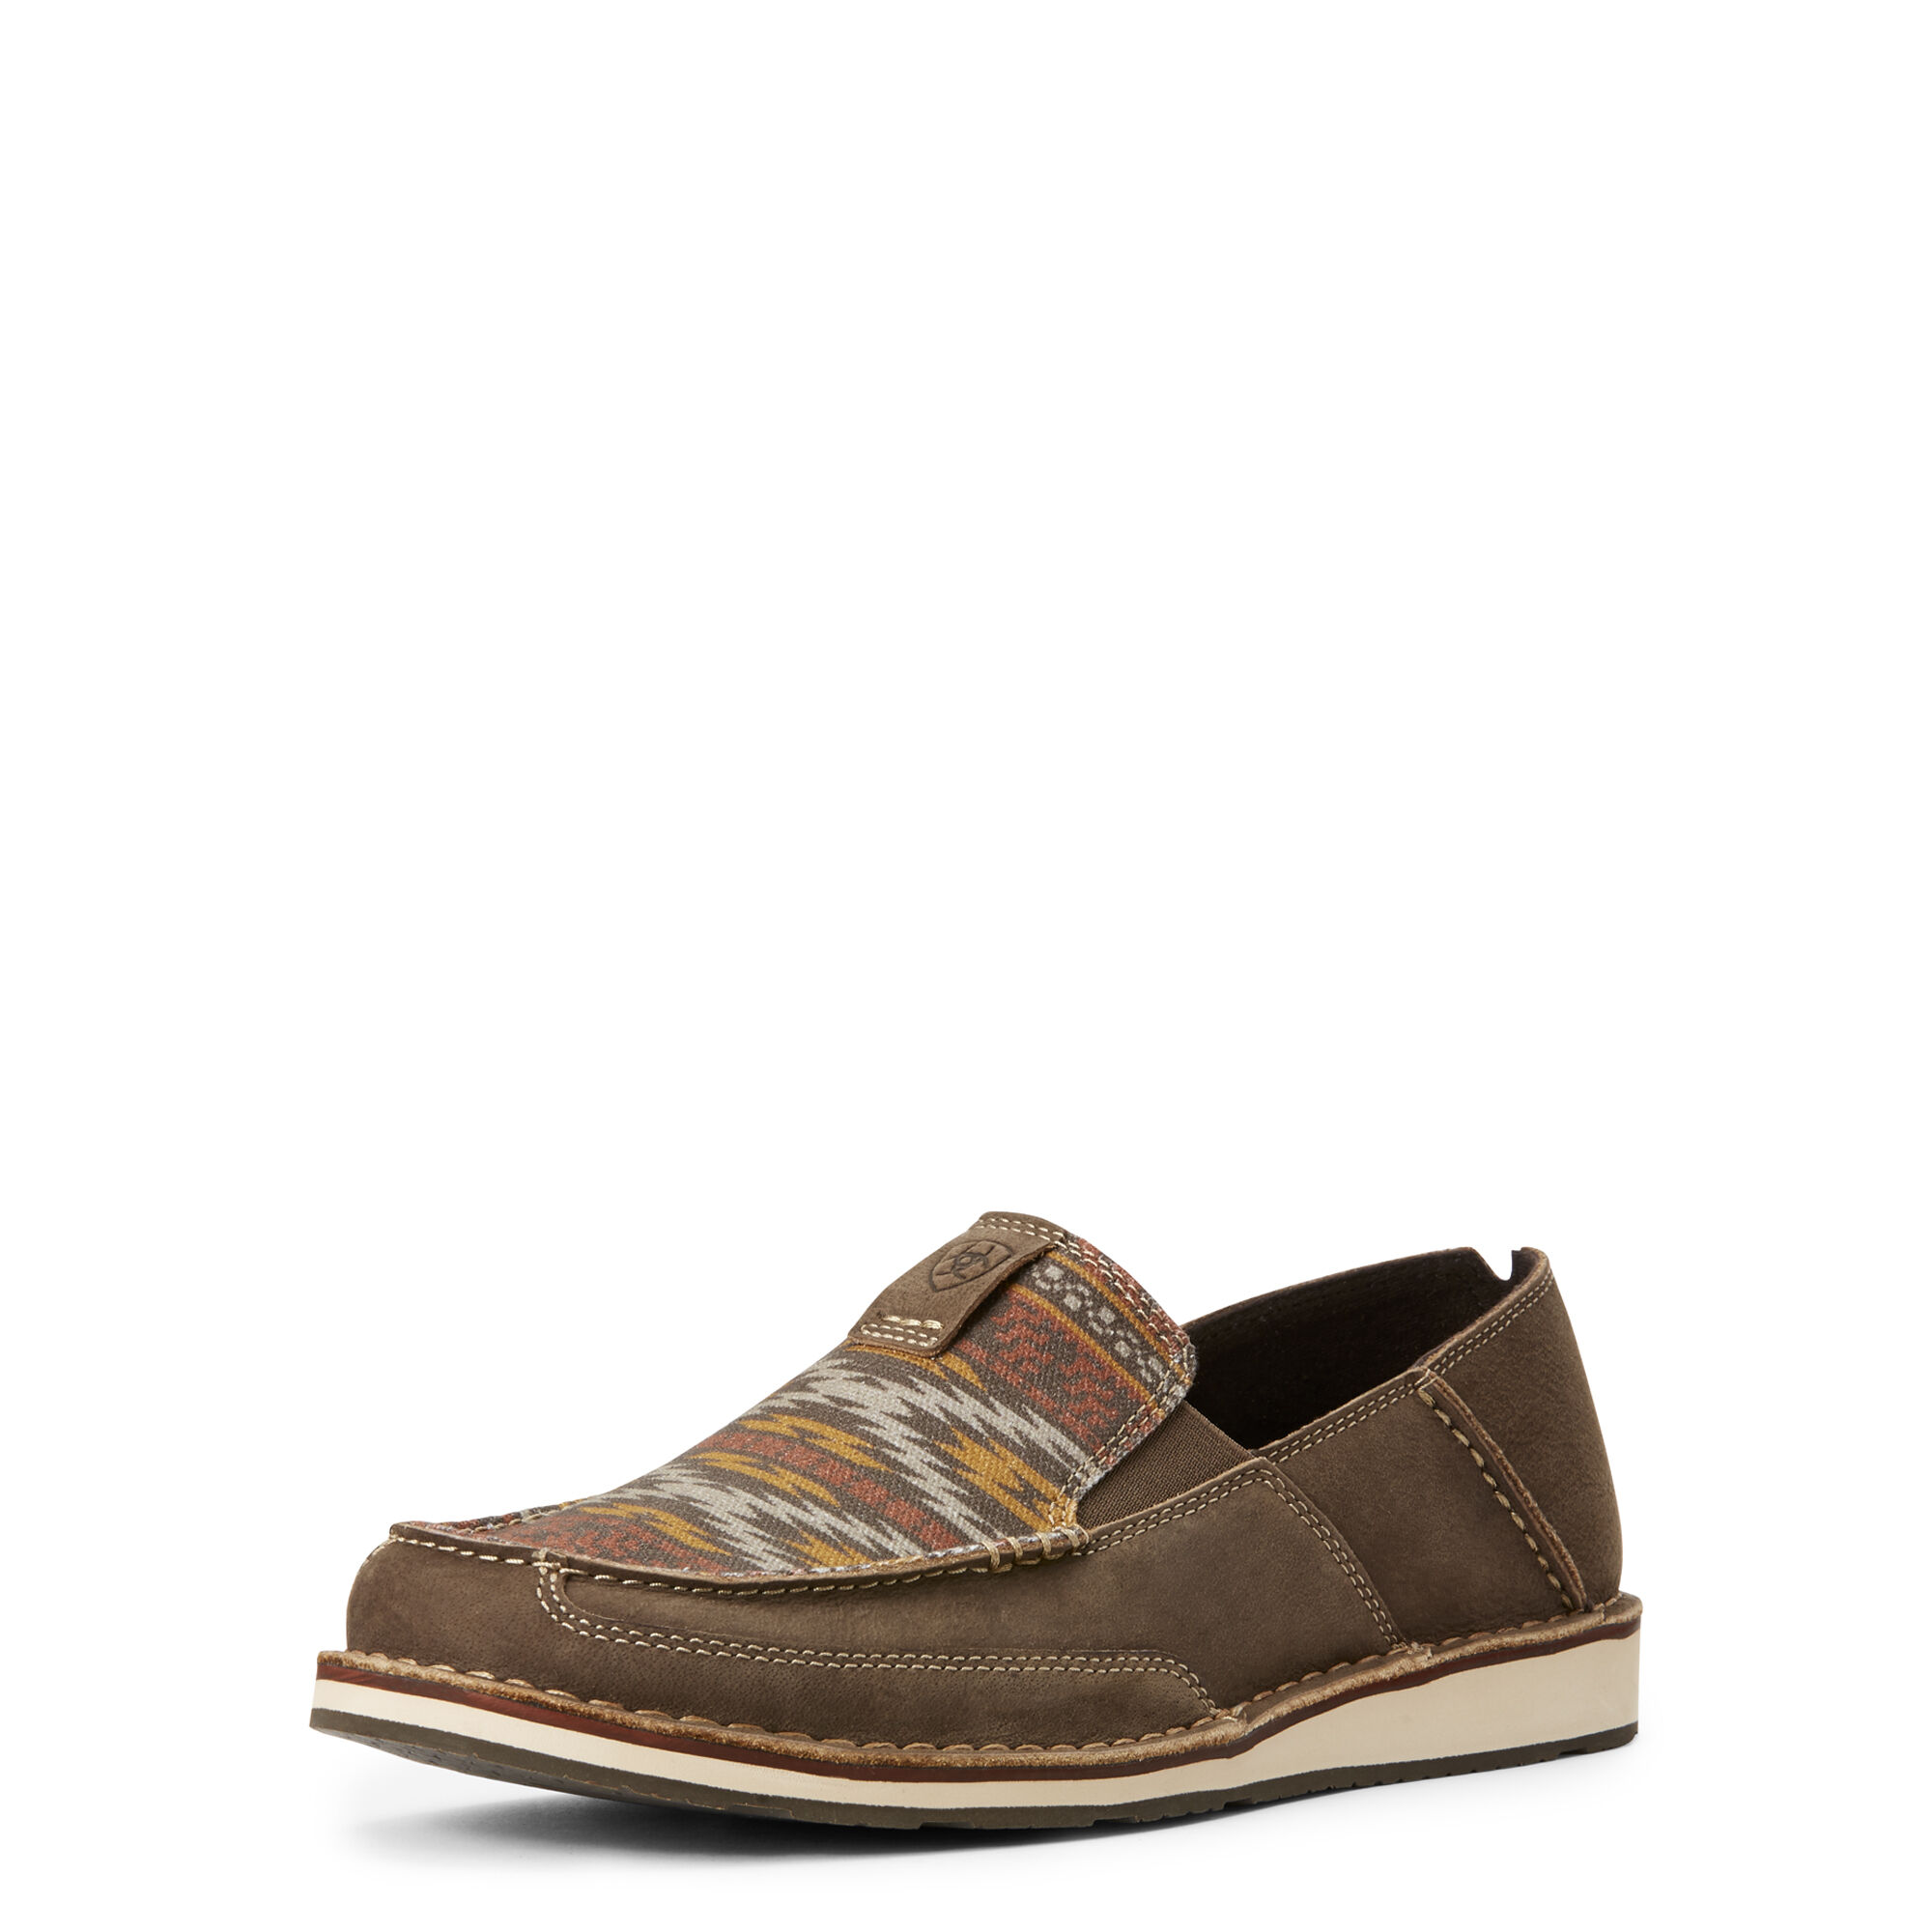 Ariat Men's Cruiser Patriot Shoes in Terrace Leather